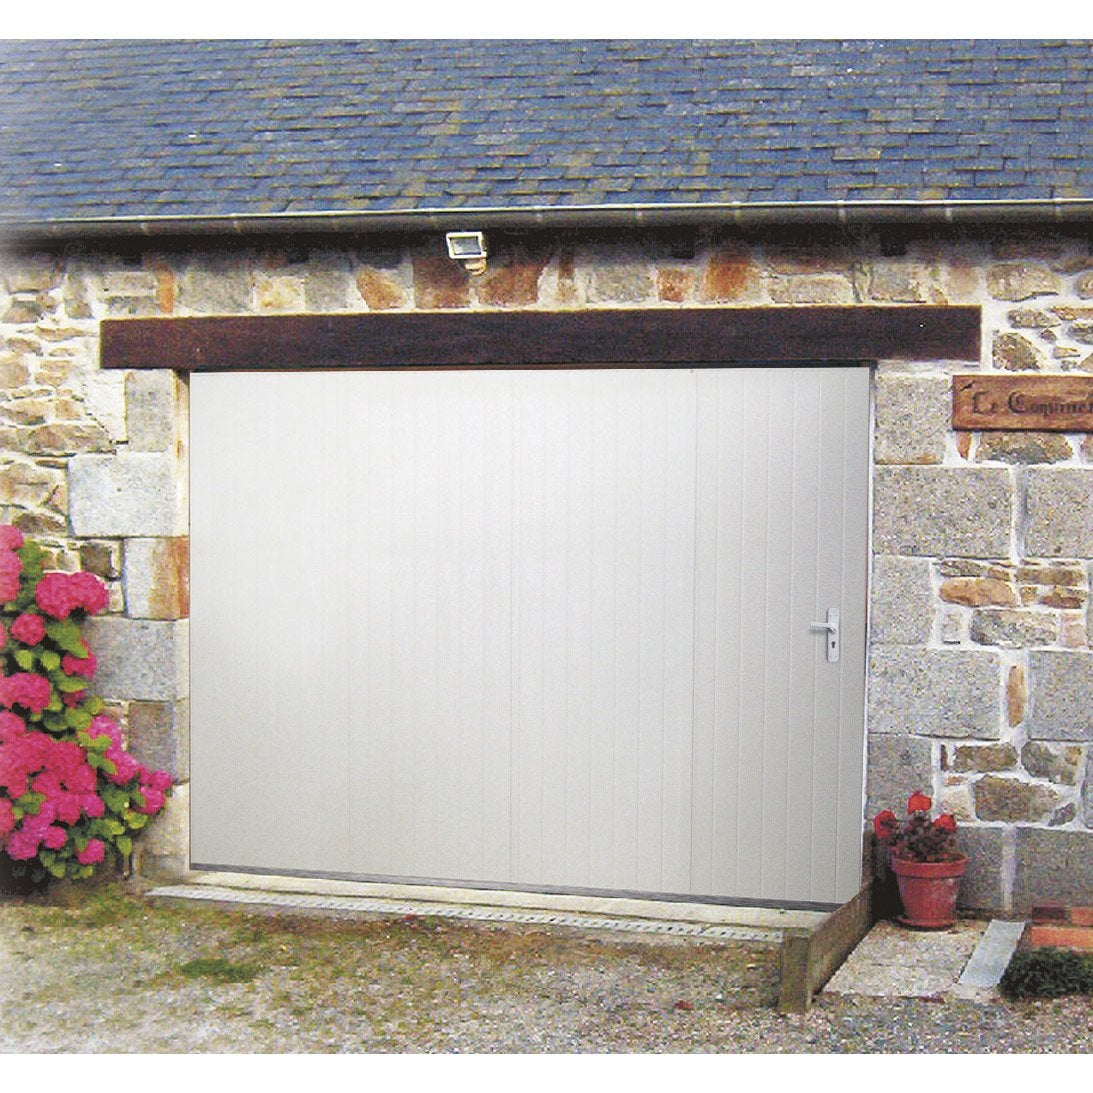 Leroy Merlin Portes De Garage Perfect Garage With Leroy Merlin - Porte placard coulissante jumelé avec serrure garage